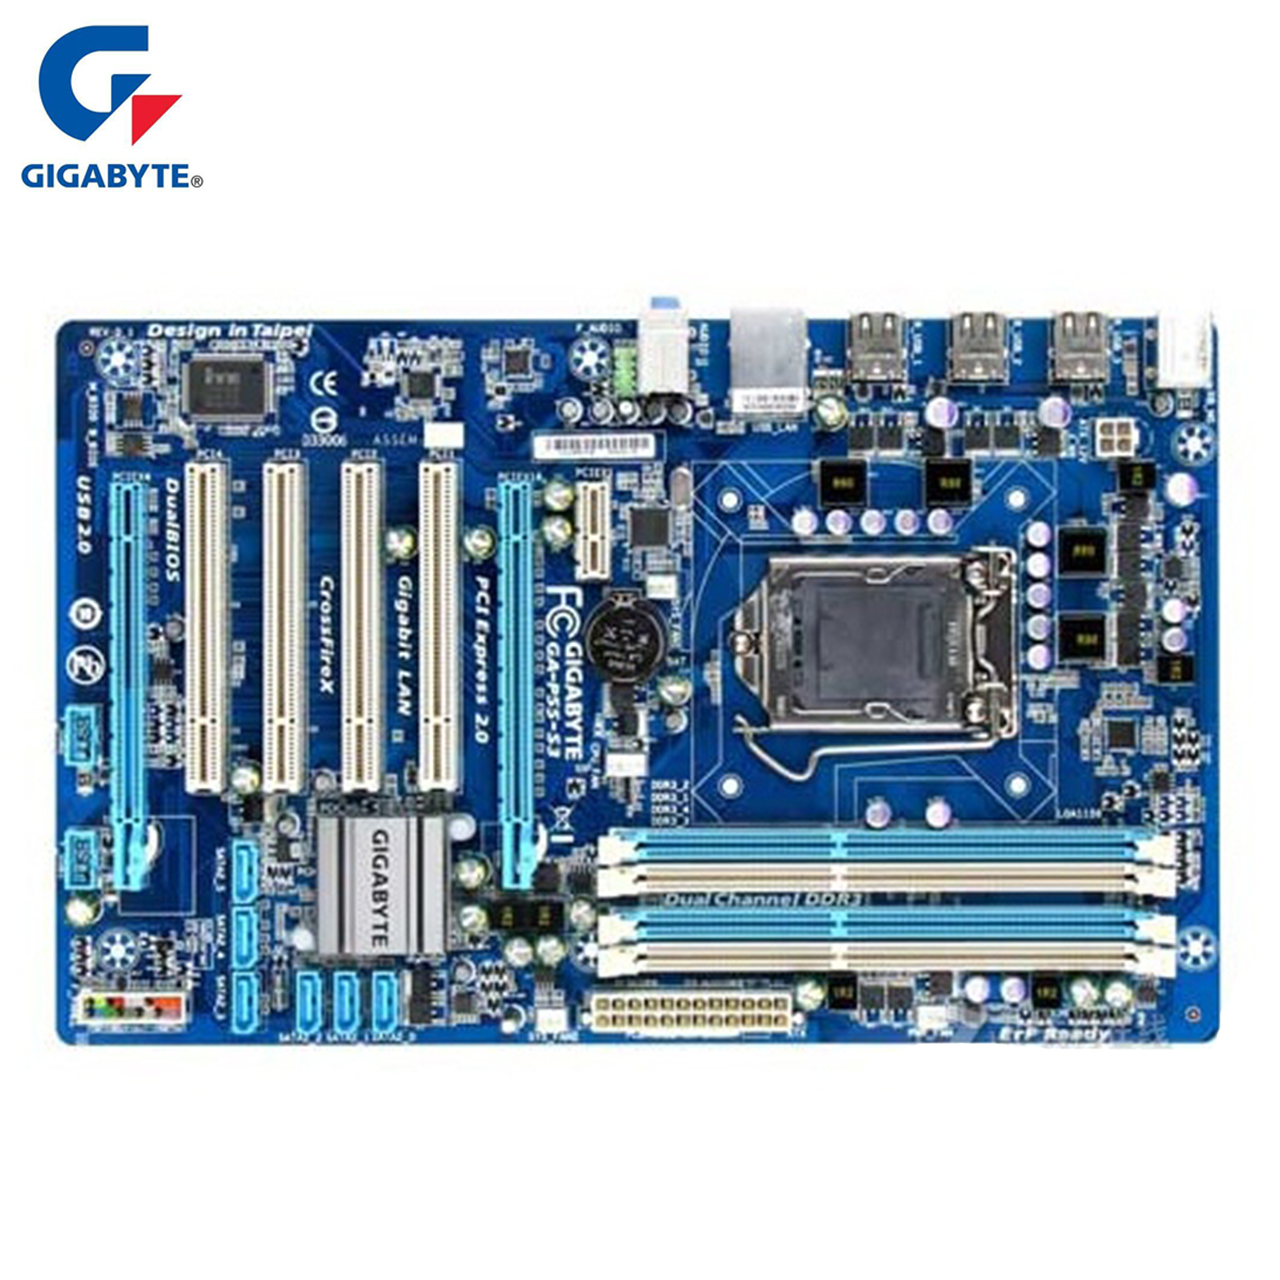 Gigabyte GA-P55-S3 100% Original Motherboard LGA 1156 DDR3 16G H55 P55 S3 P55-S3 Desktop Mainboard Systemboard Used Mother board